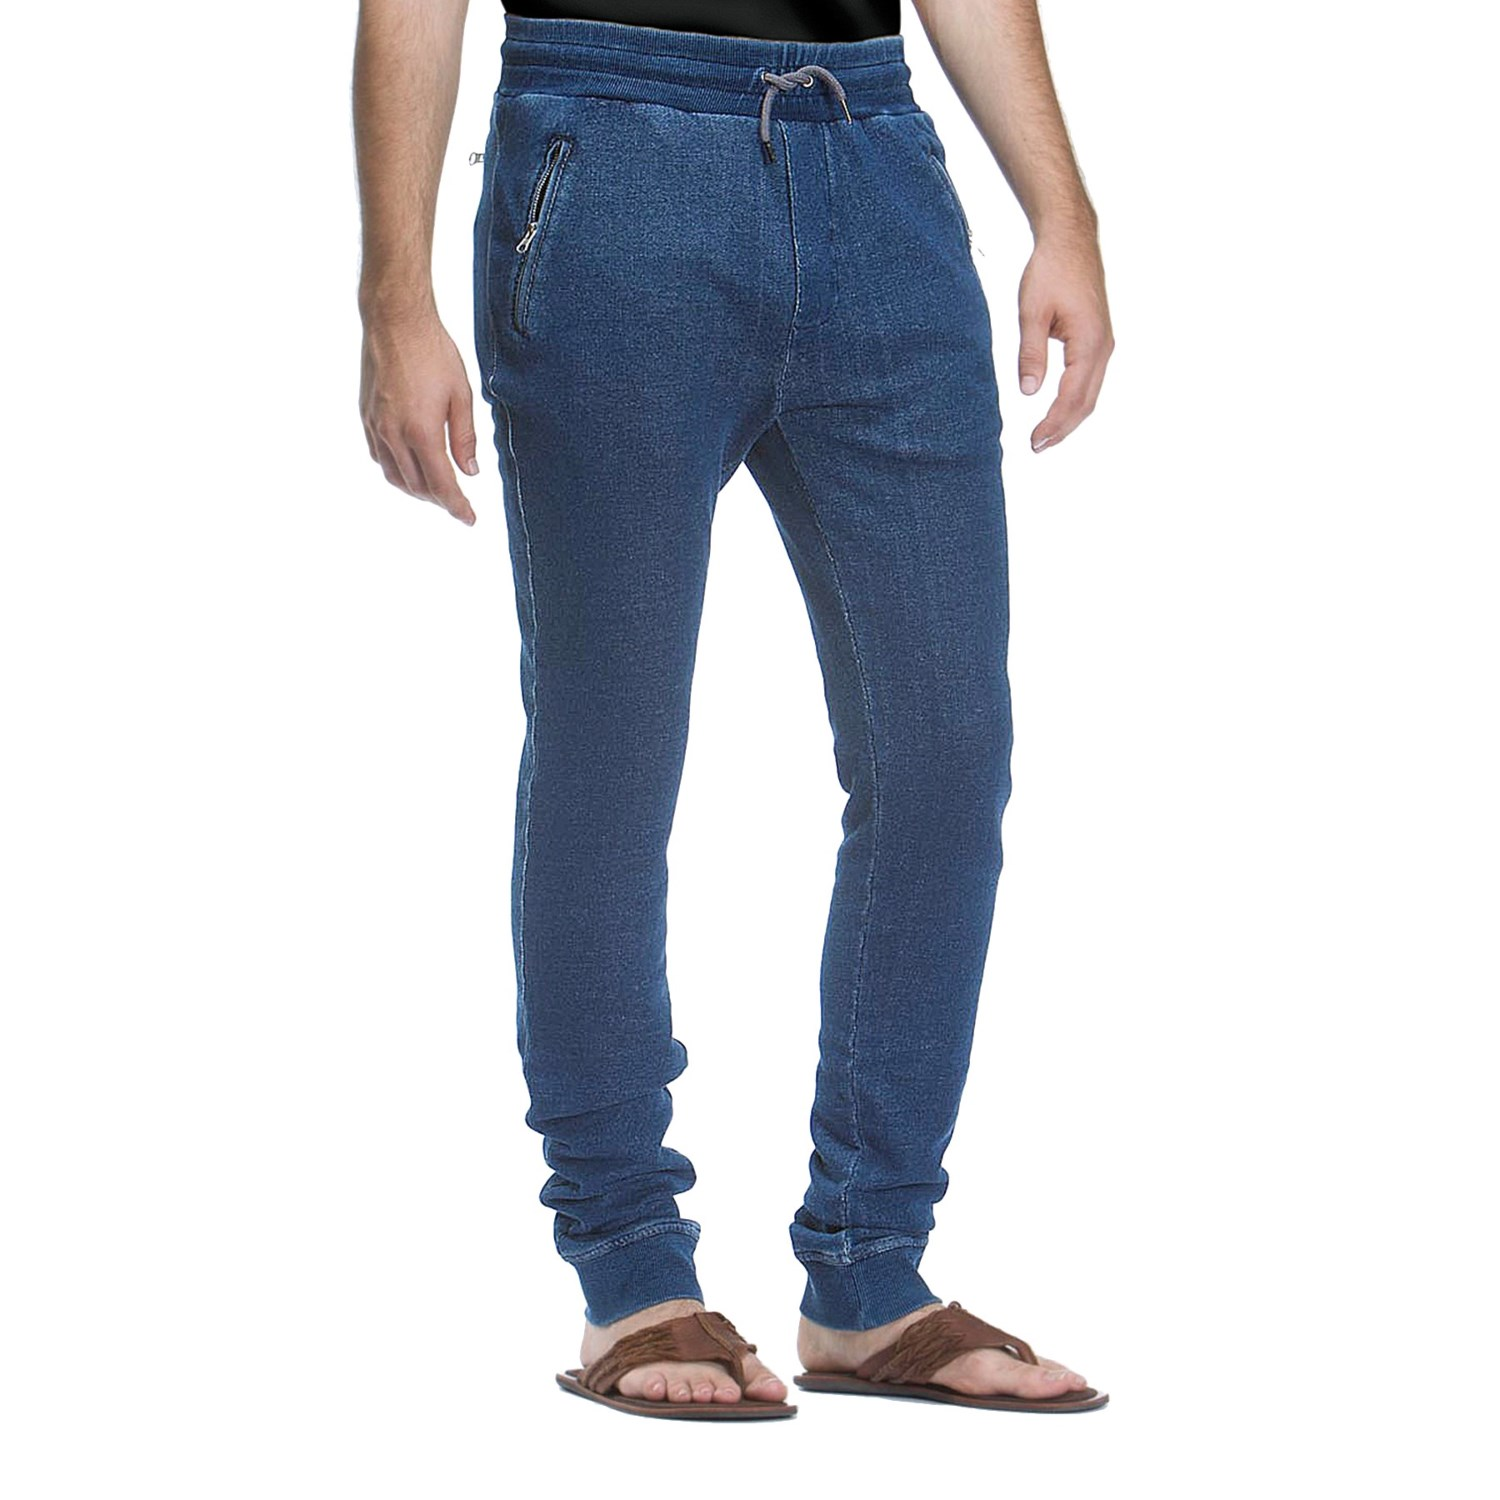 Shop online for Robin's Jean latest collection. Brand Name American Apparel: Jeans, Jackets, Hats and Accessories. Wide range of styles and trends.